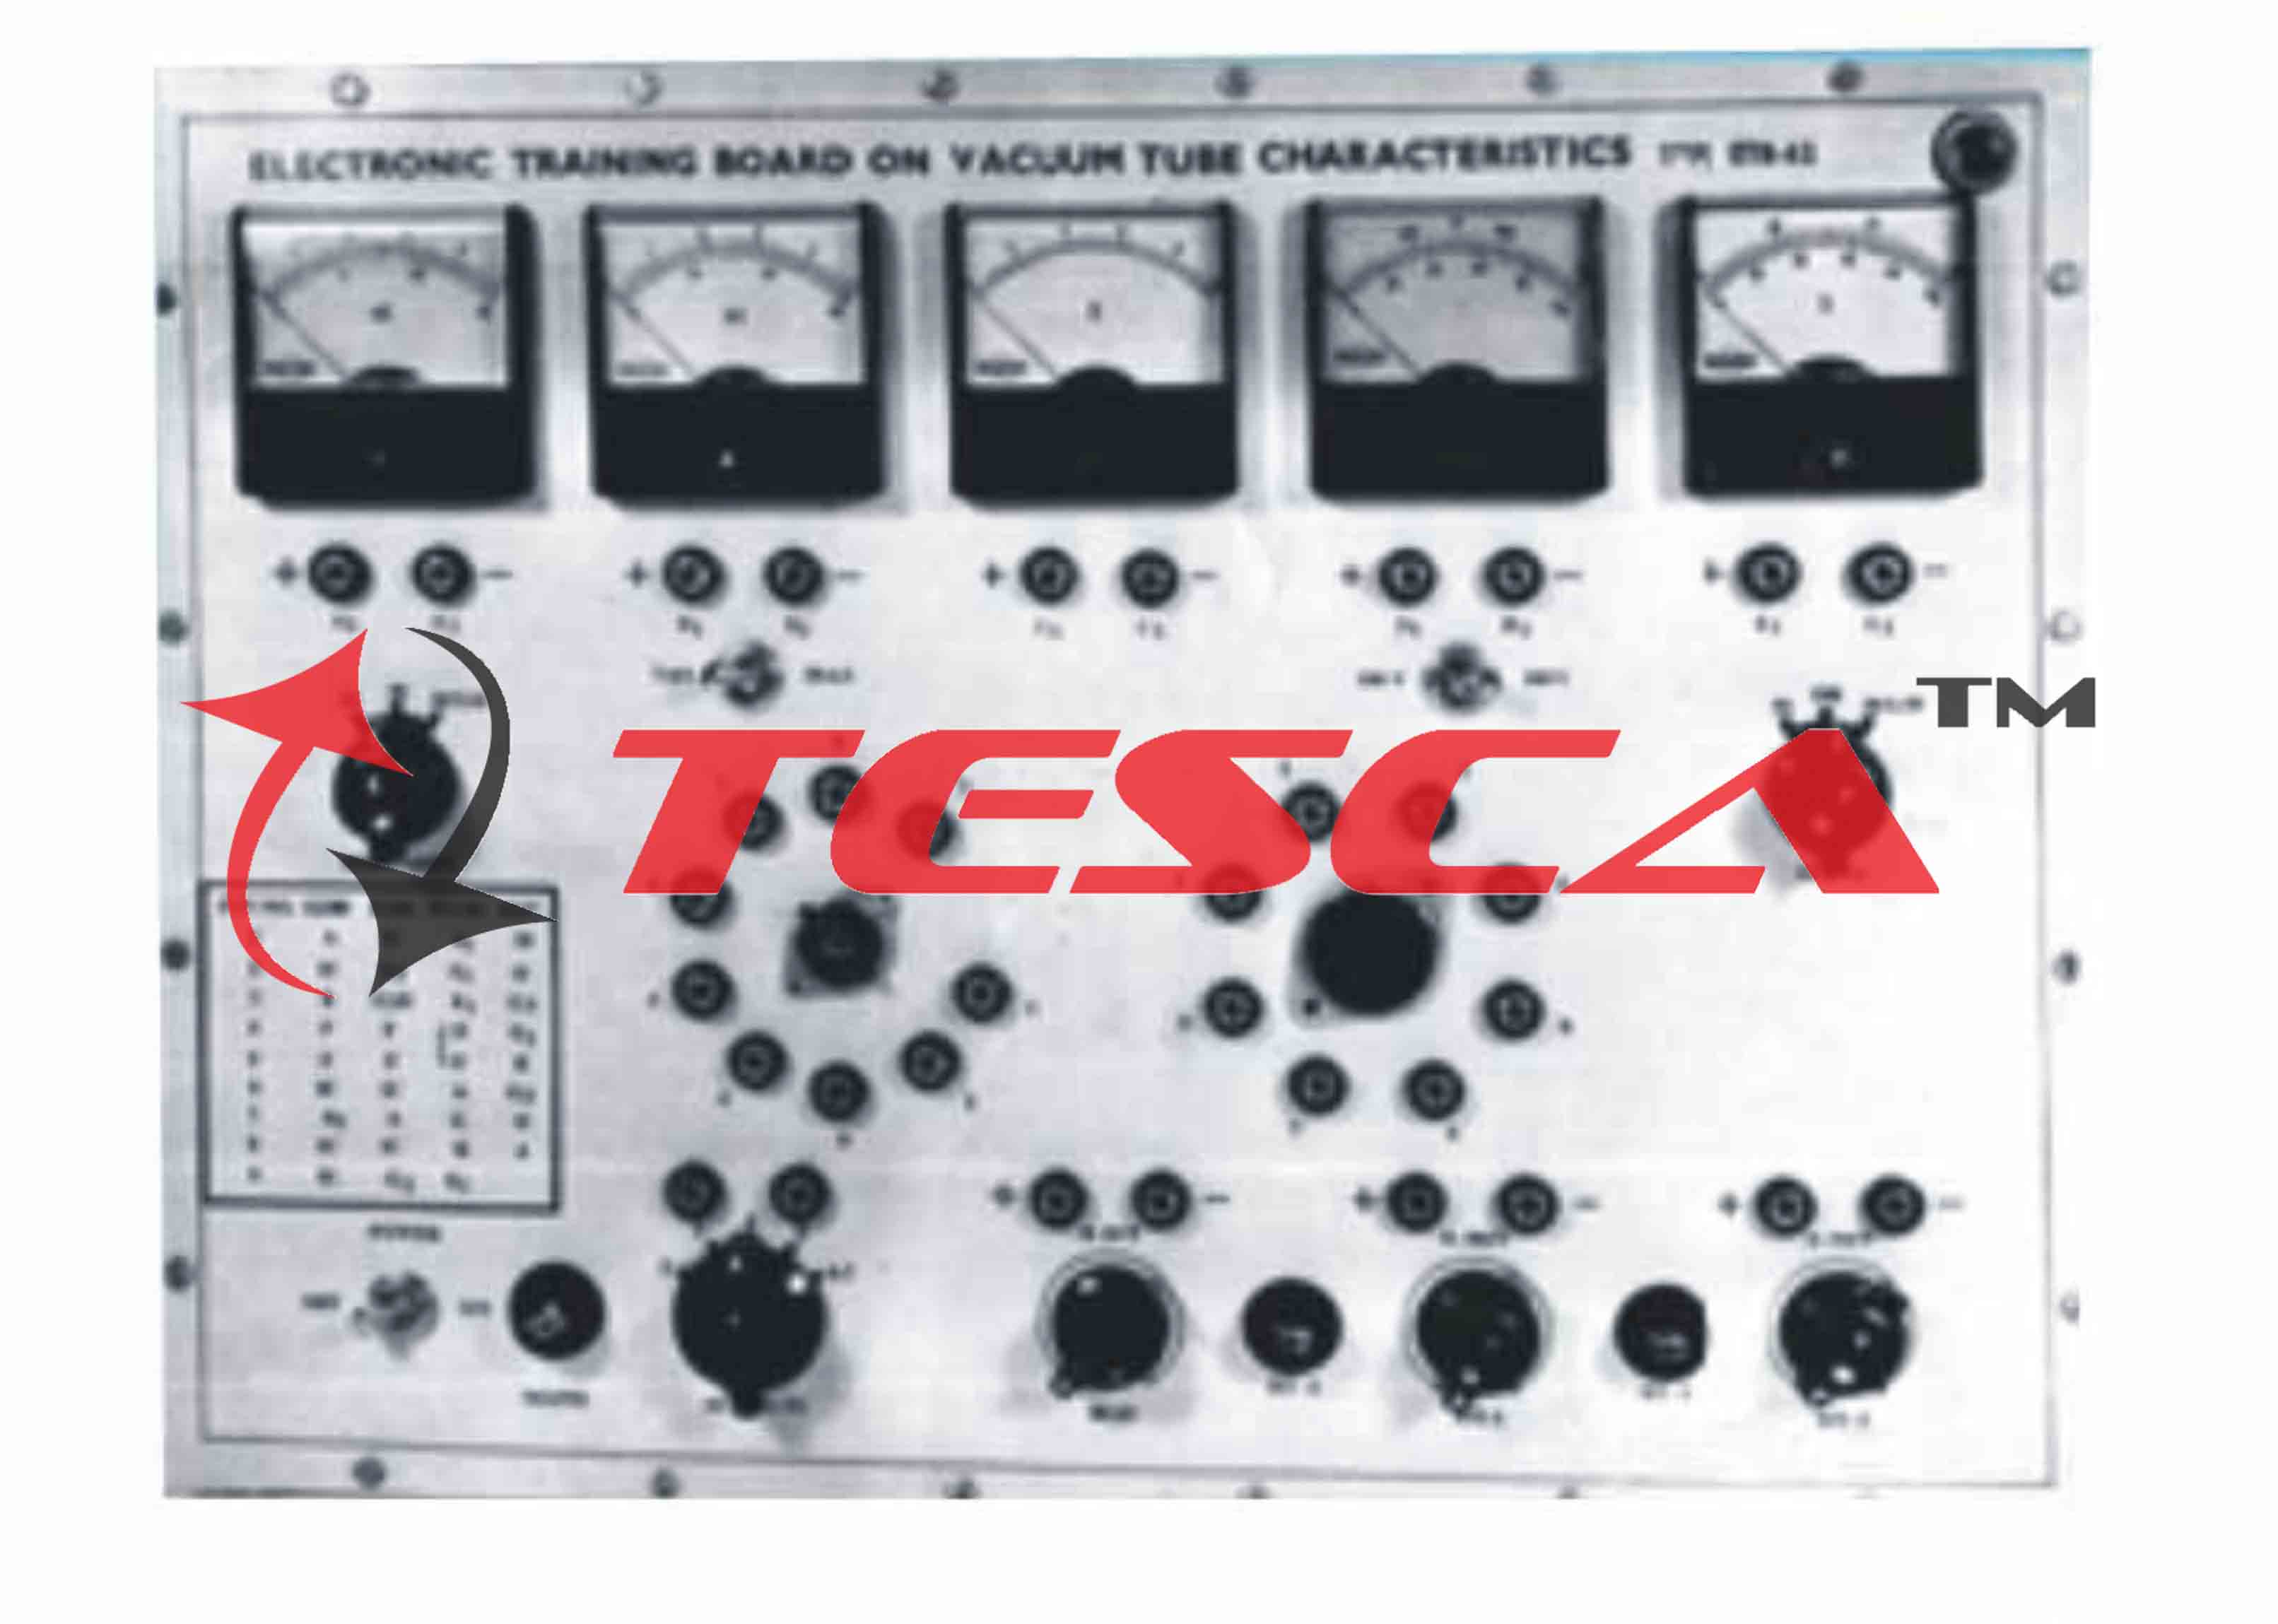 Vacuum Tube Characteristics For Diode Triode Tetrode Pentode Electronics What Is A With Power Supply And 5 Meters Cr Vv